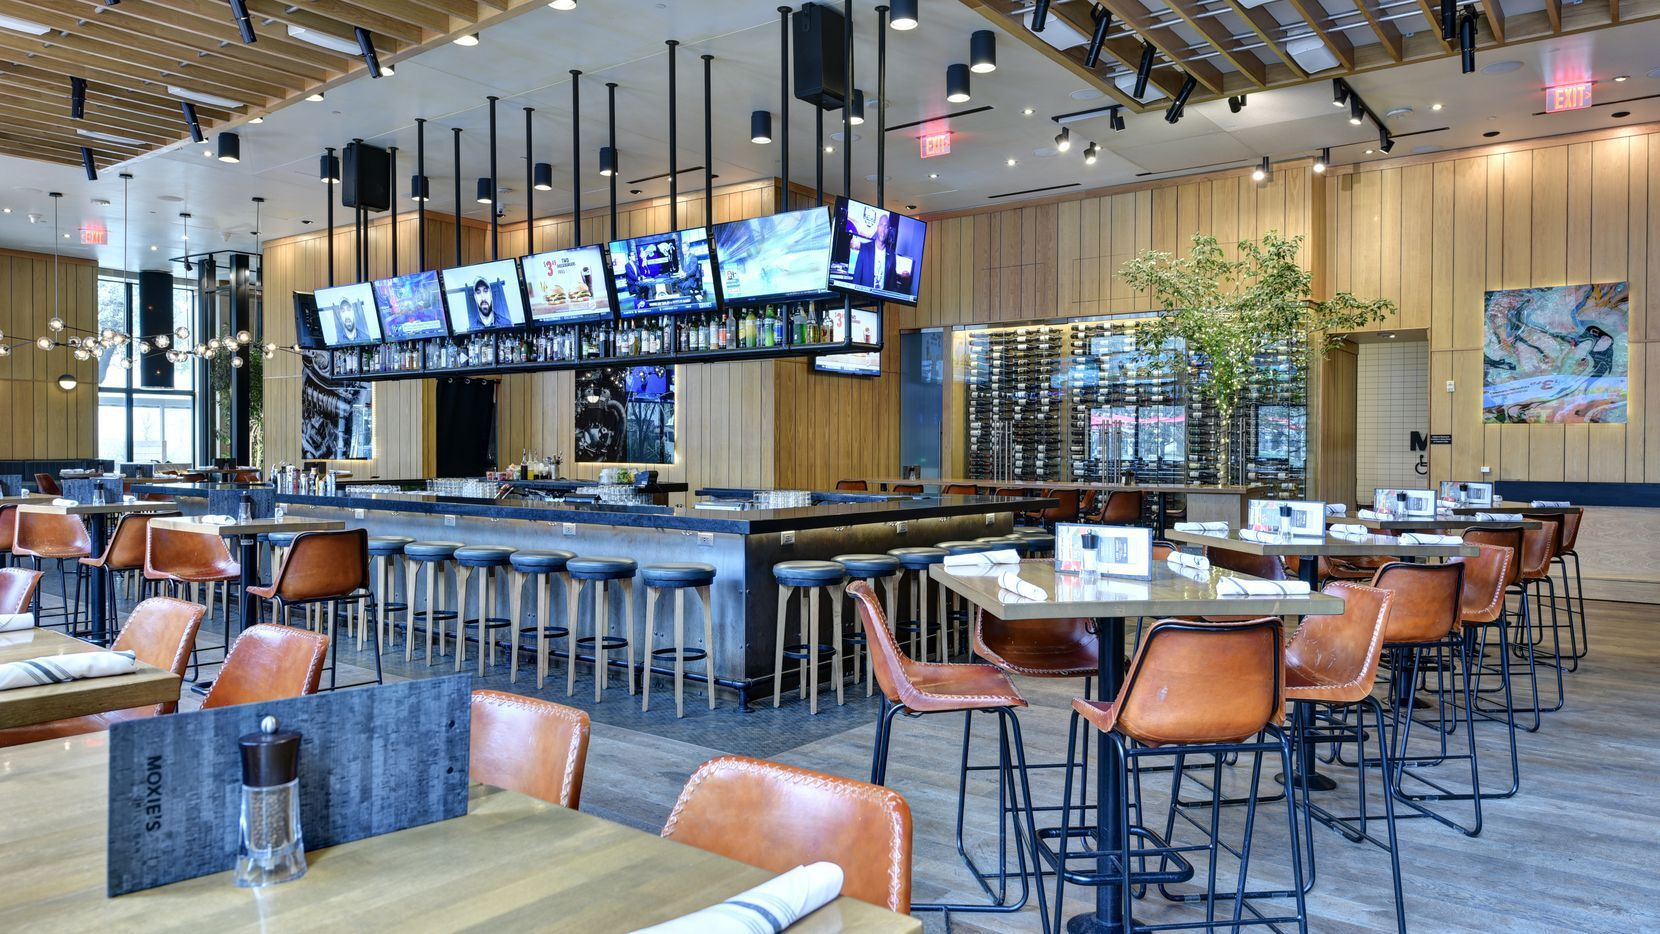 Moxie s Bar & Grill opened in Southlake Town Square in September 2020.